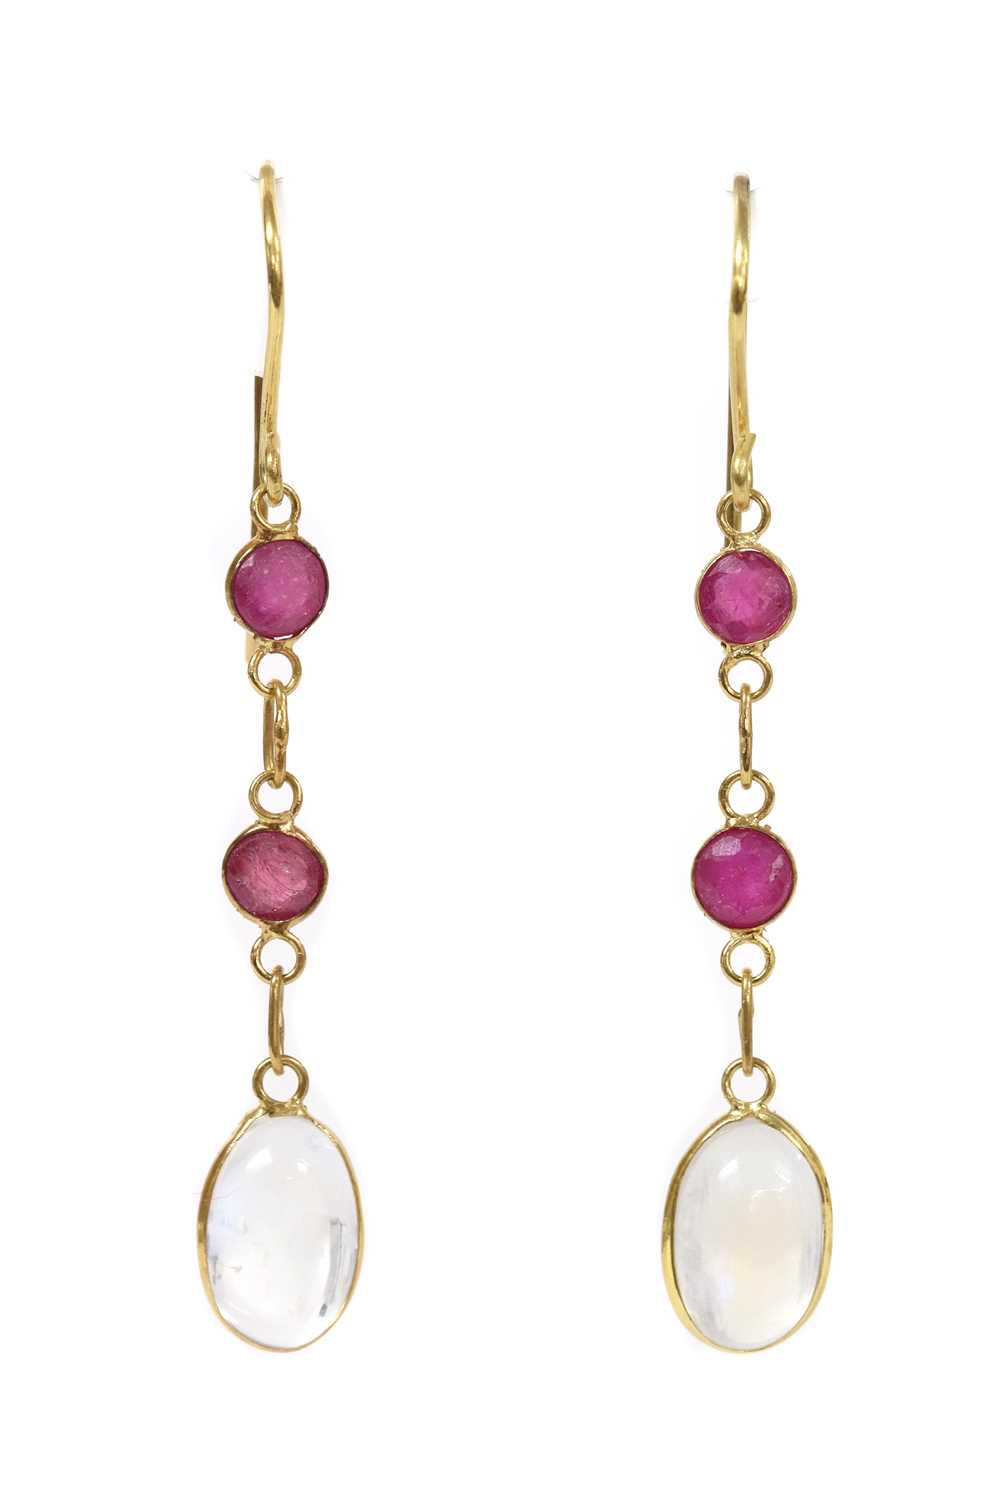 A pair of gold moonstone and ruby drop earrings,